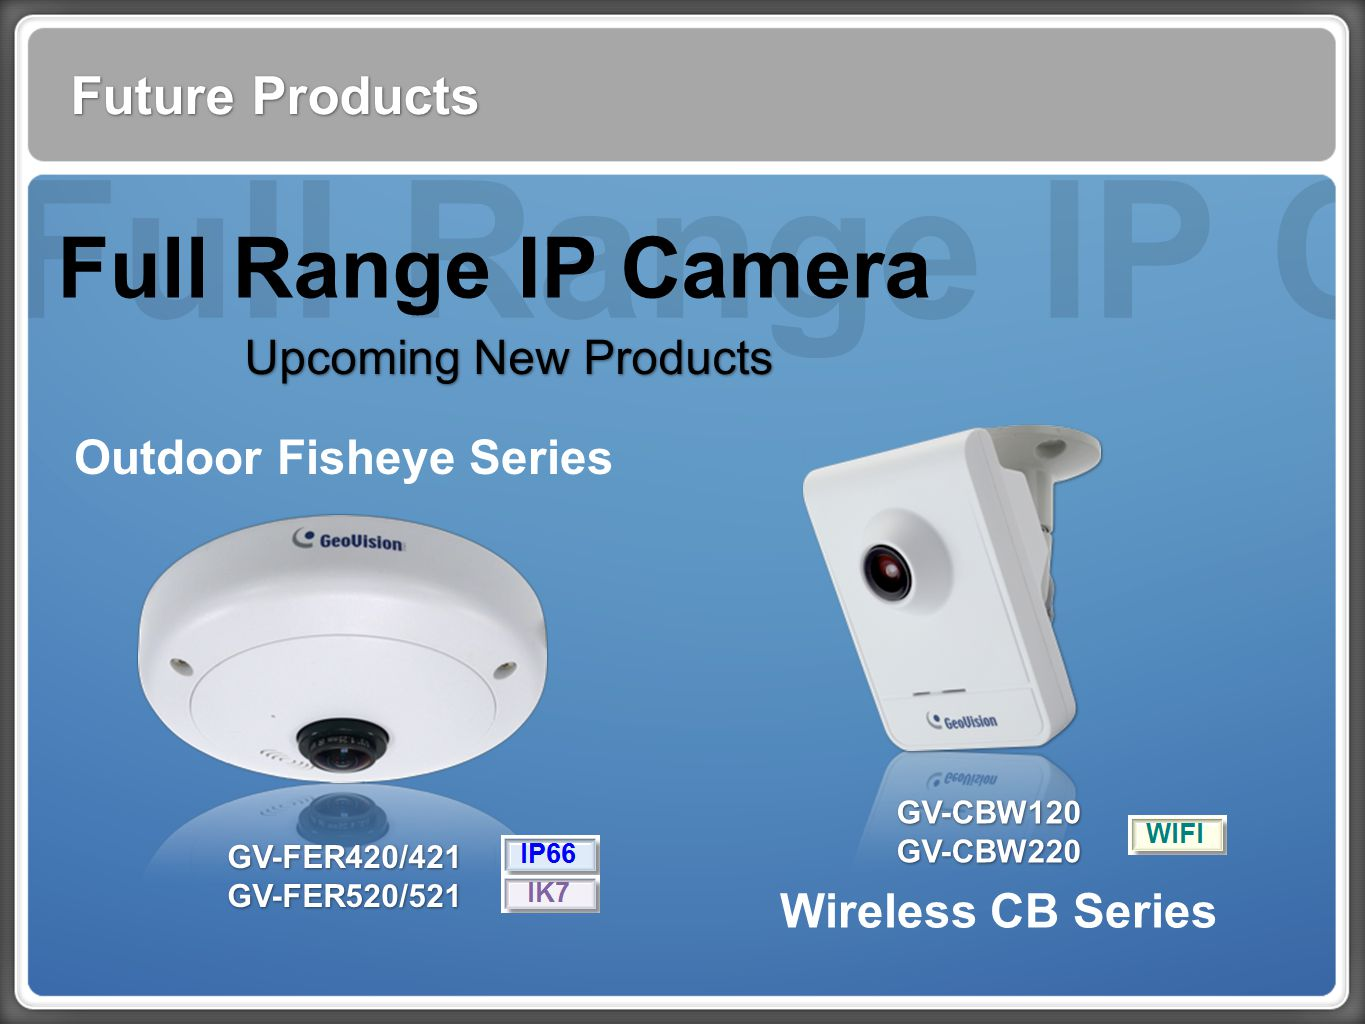 Full Range IP Cam Future Products Full Range IP Camera Upcoming New Products Outdoor Fisheye Series Wireless CB Series GV-FER420/421 GV-FER520/521 GV-FER420/421 GV-FER520/521 GV-CBW120 GV-CBW220 GV-CBW120 GV-CBW220